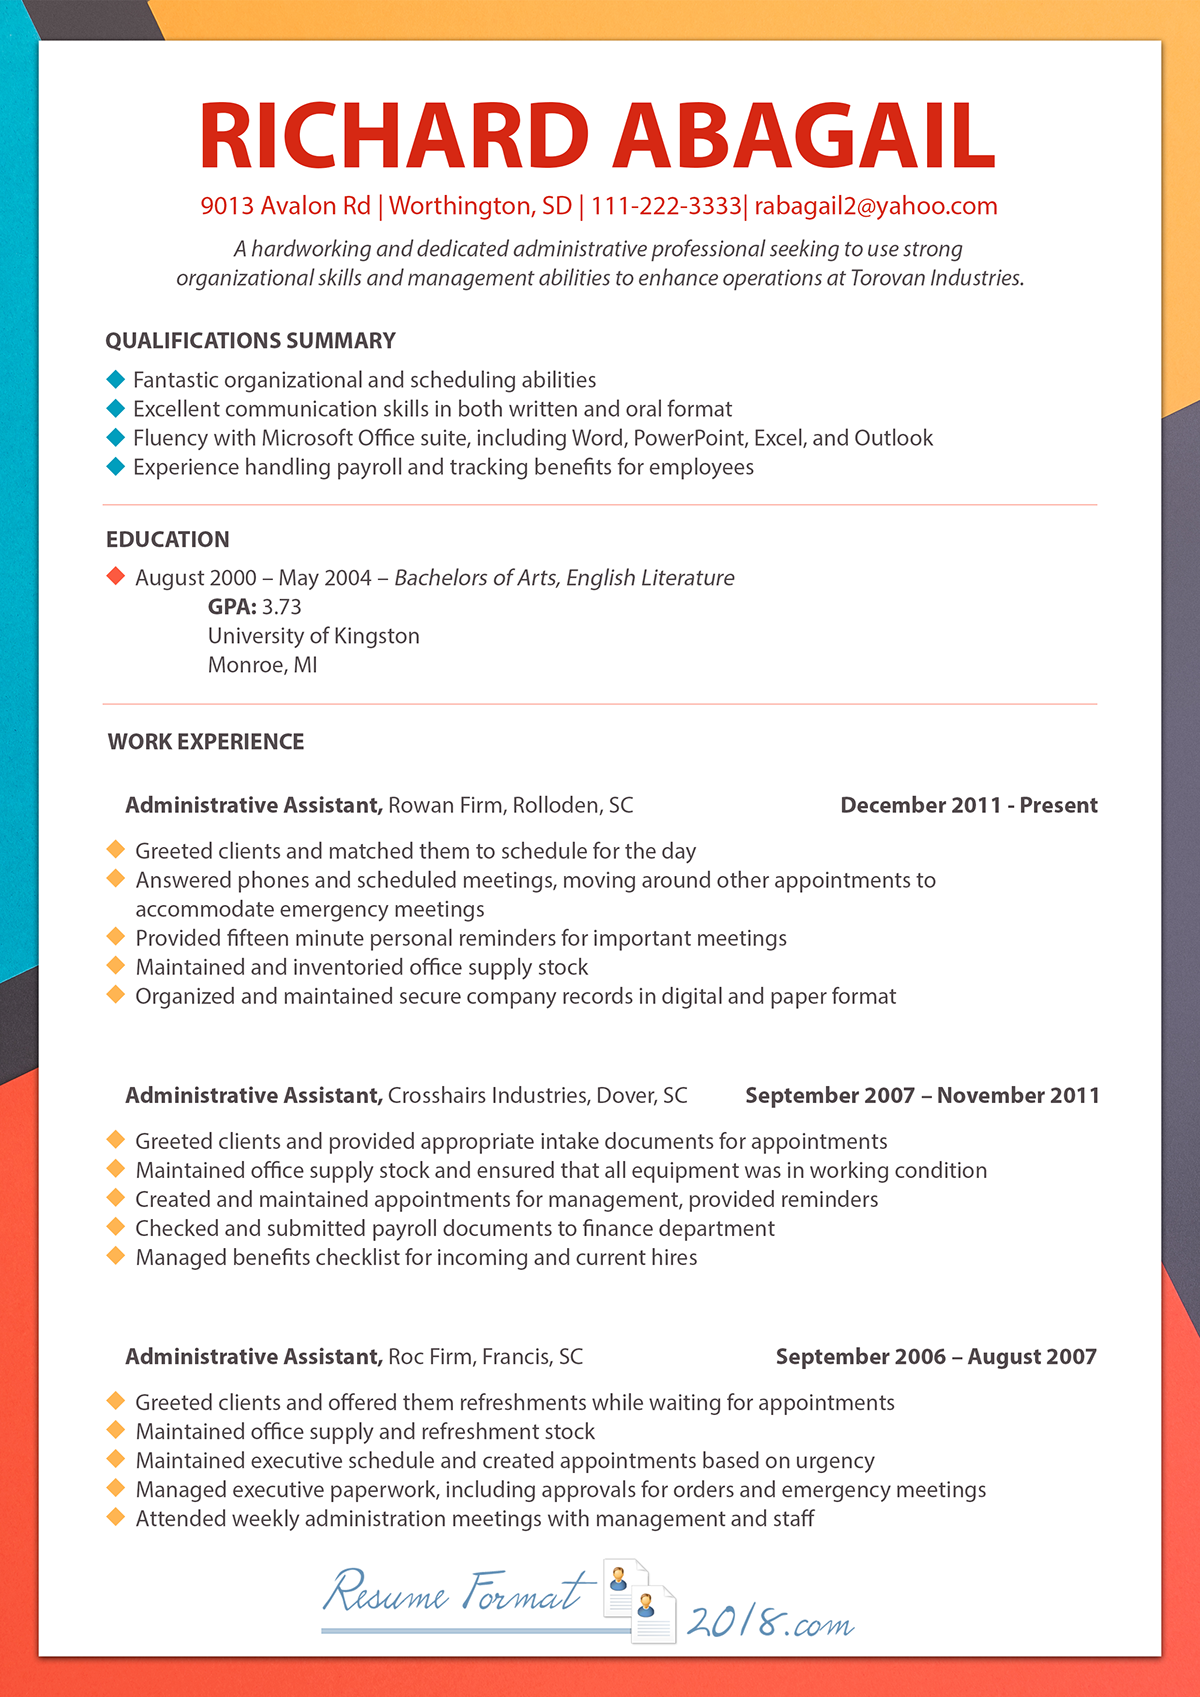 Resume 2018 Format.Chronological Resume Template 2018 On Pantone Canvas Gallery